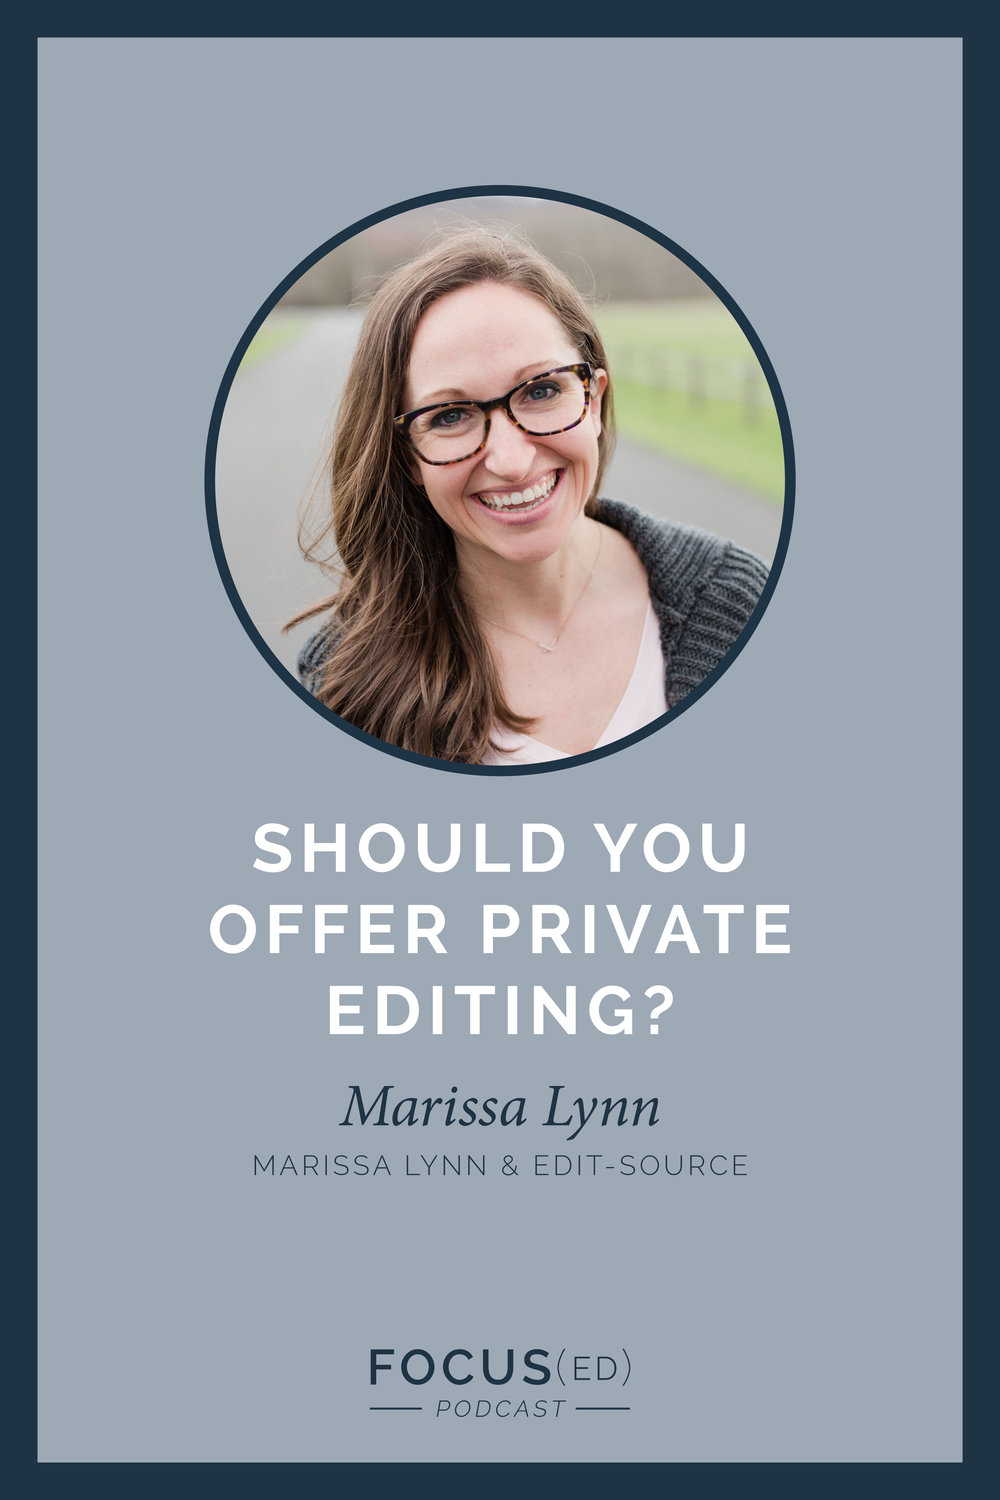 Should I offer outsourcing? | Outsourcing your editing | Focused Podcast | www.cinnamonwolfe.co